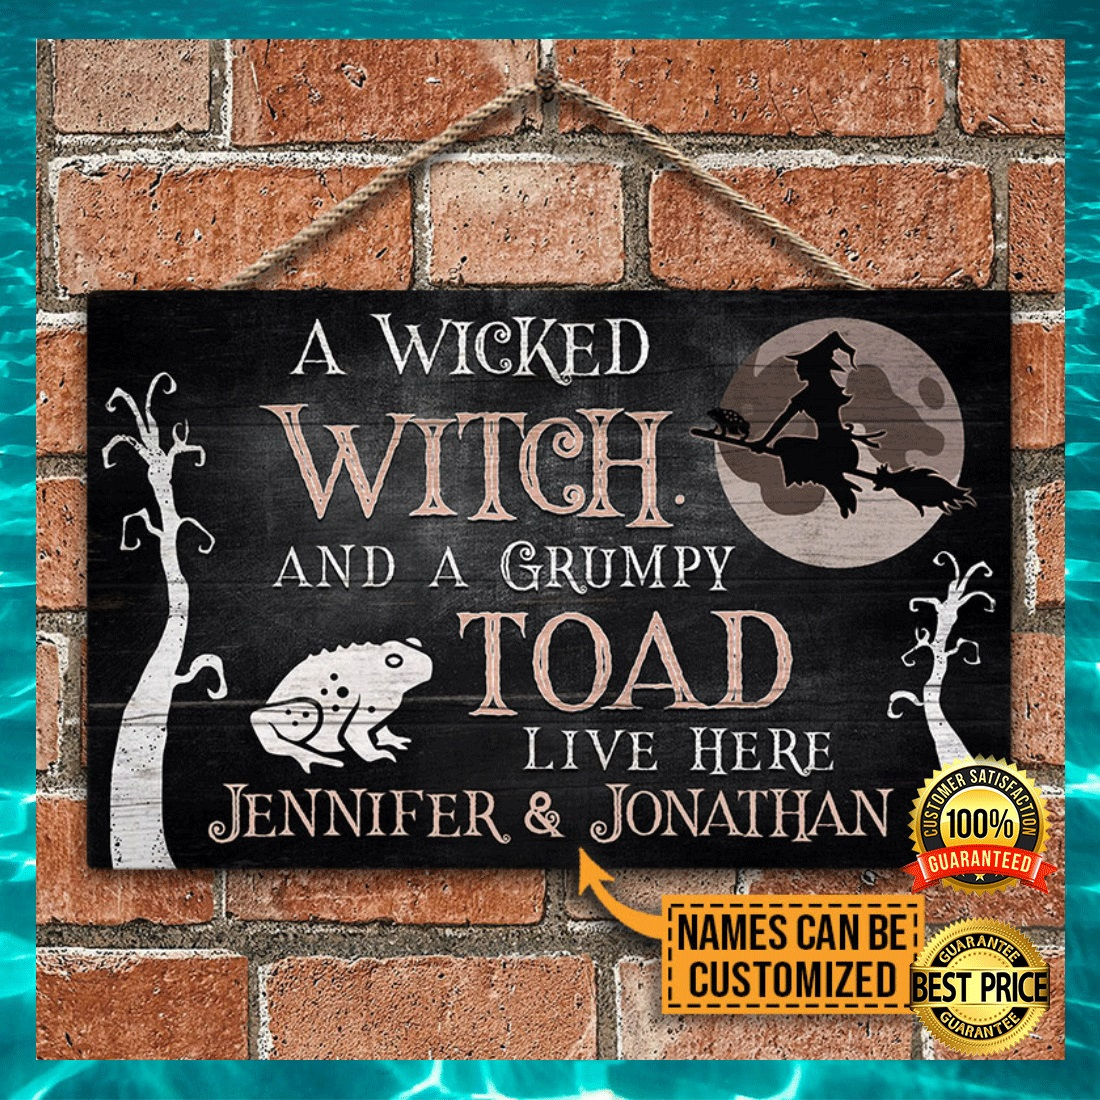 PERSONALIZED A WICKED WITCH AND A GRUMPY TOAD LIVE HERE DOOR SIGN 7